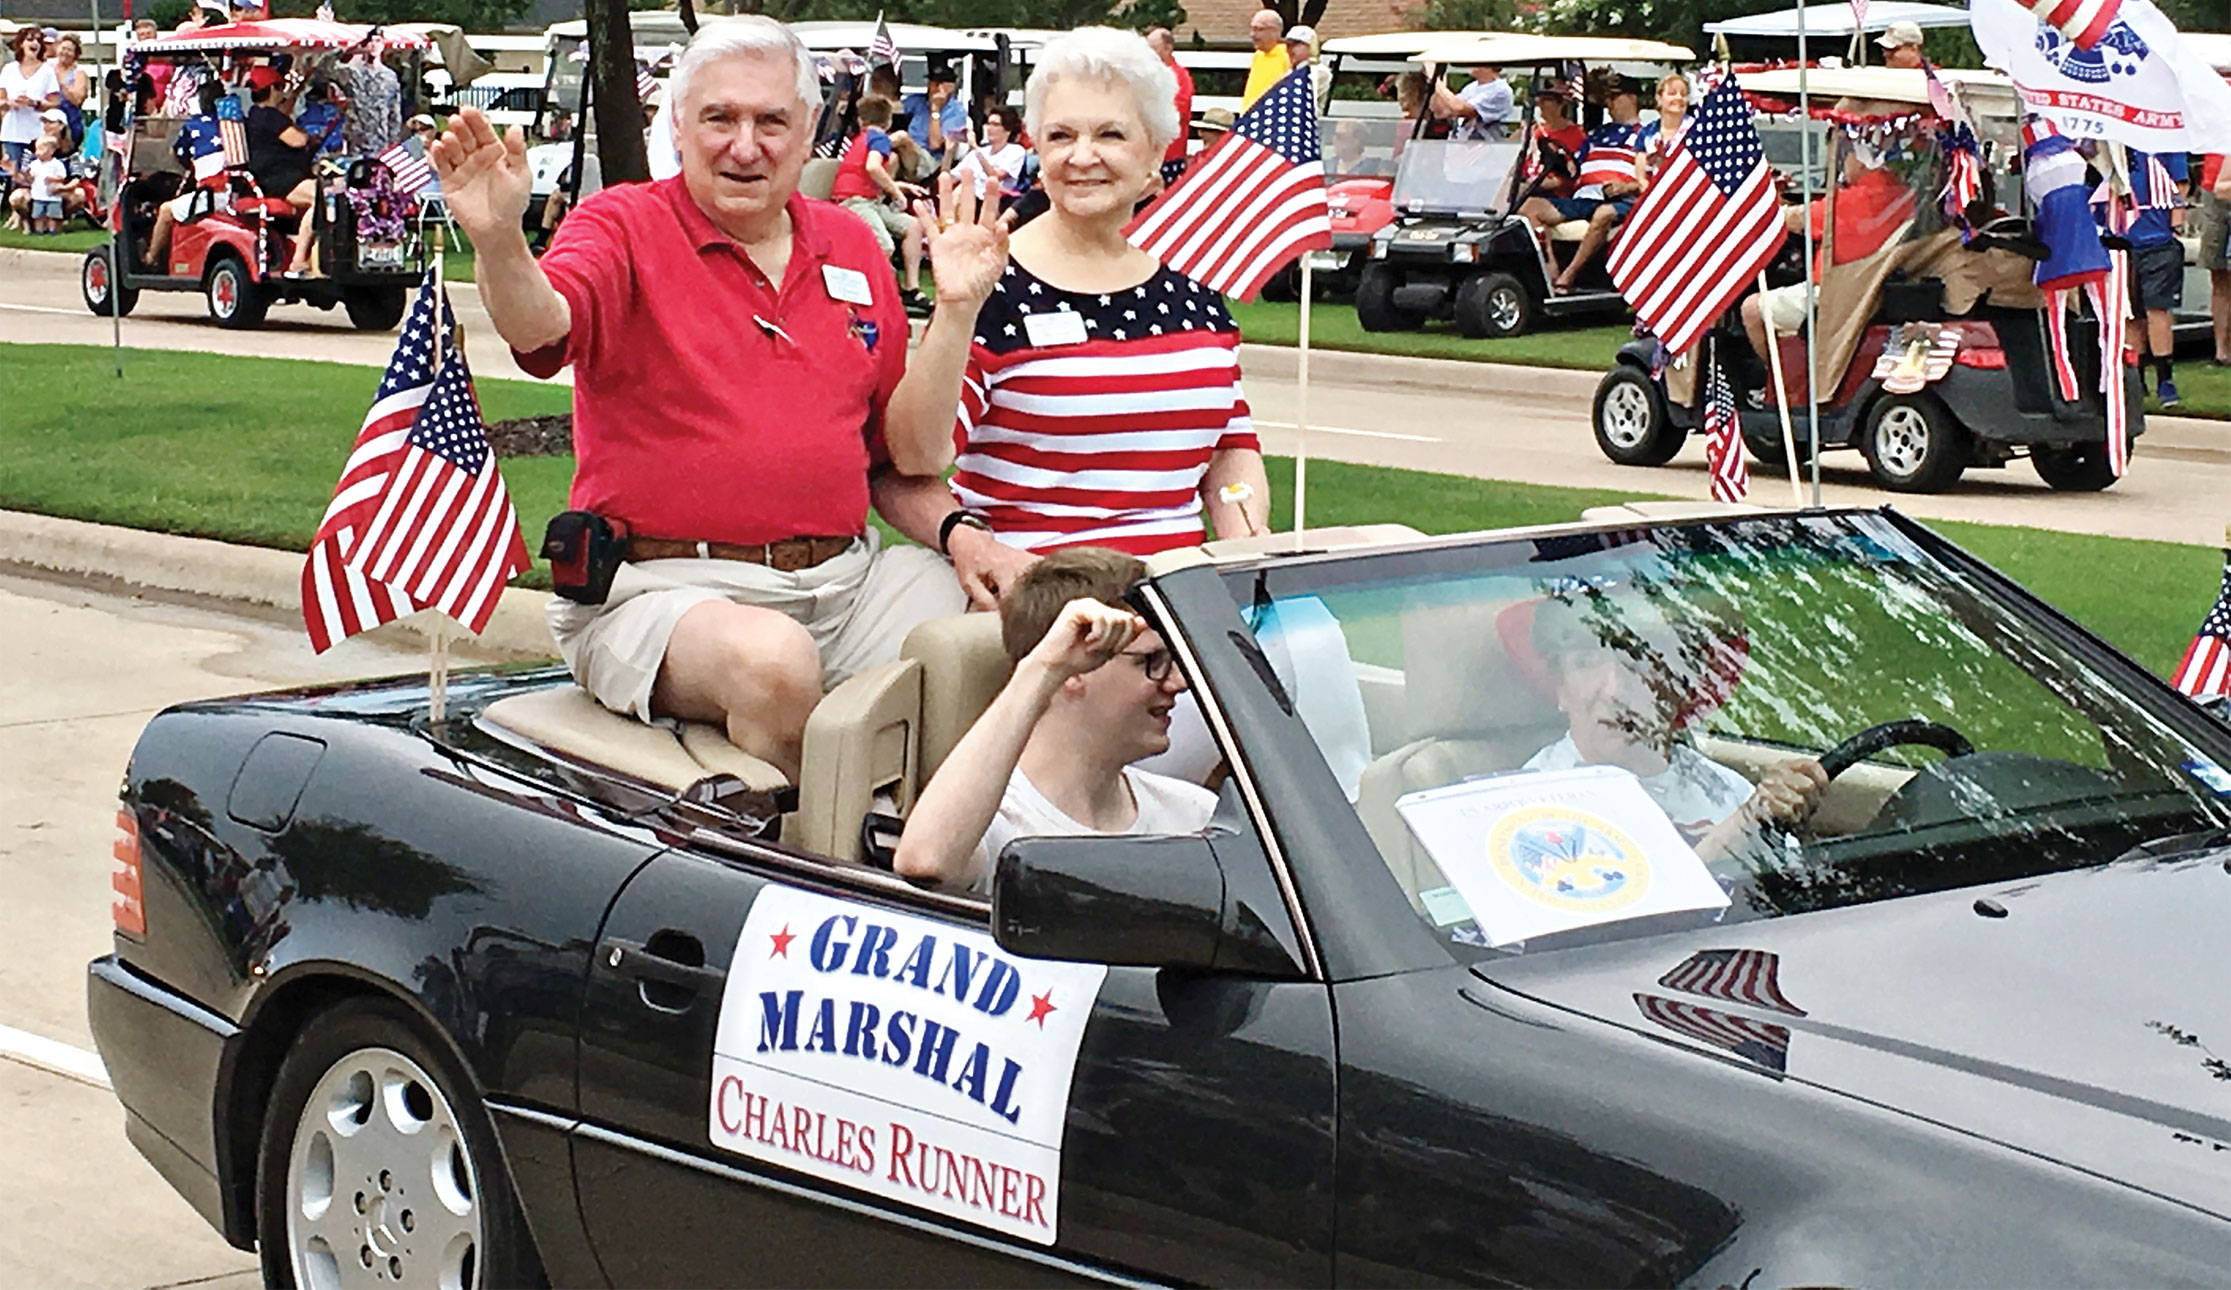 Grand Marshal Chuck Runner and wife Barbara